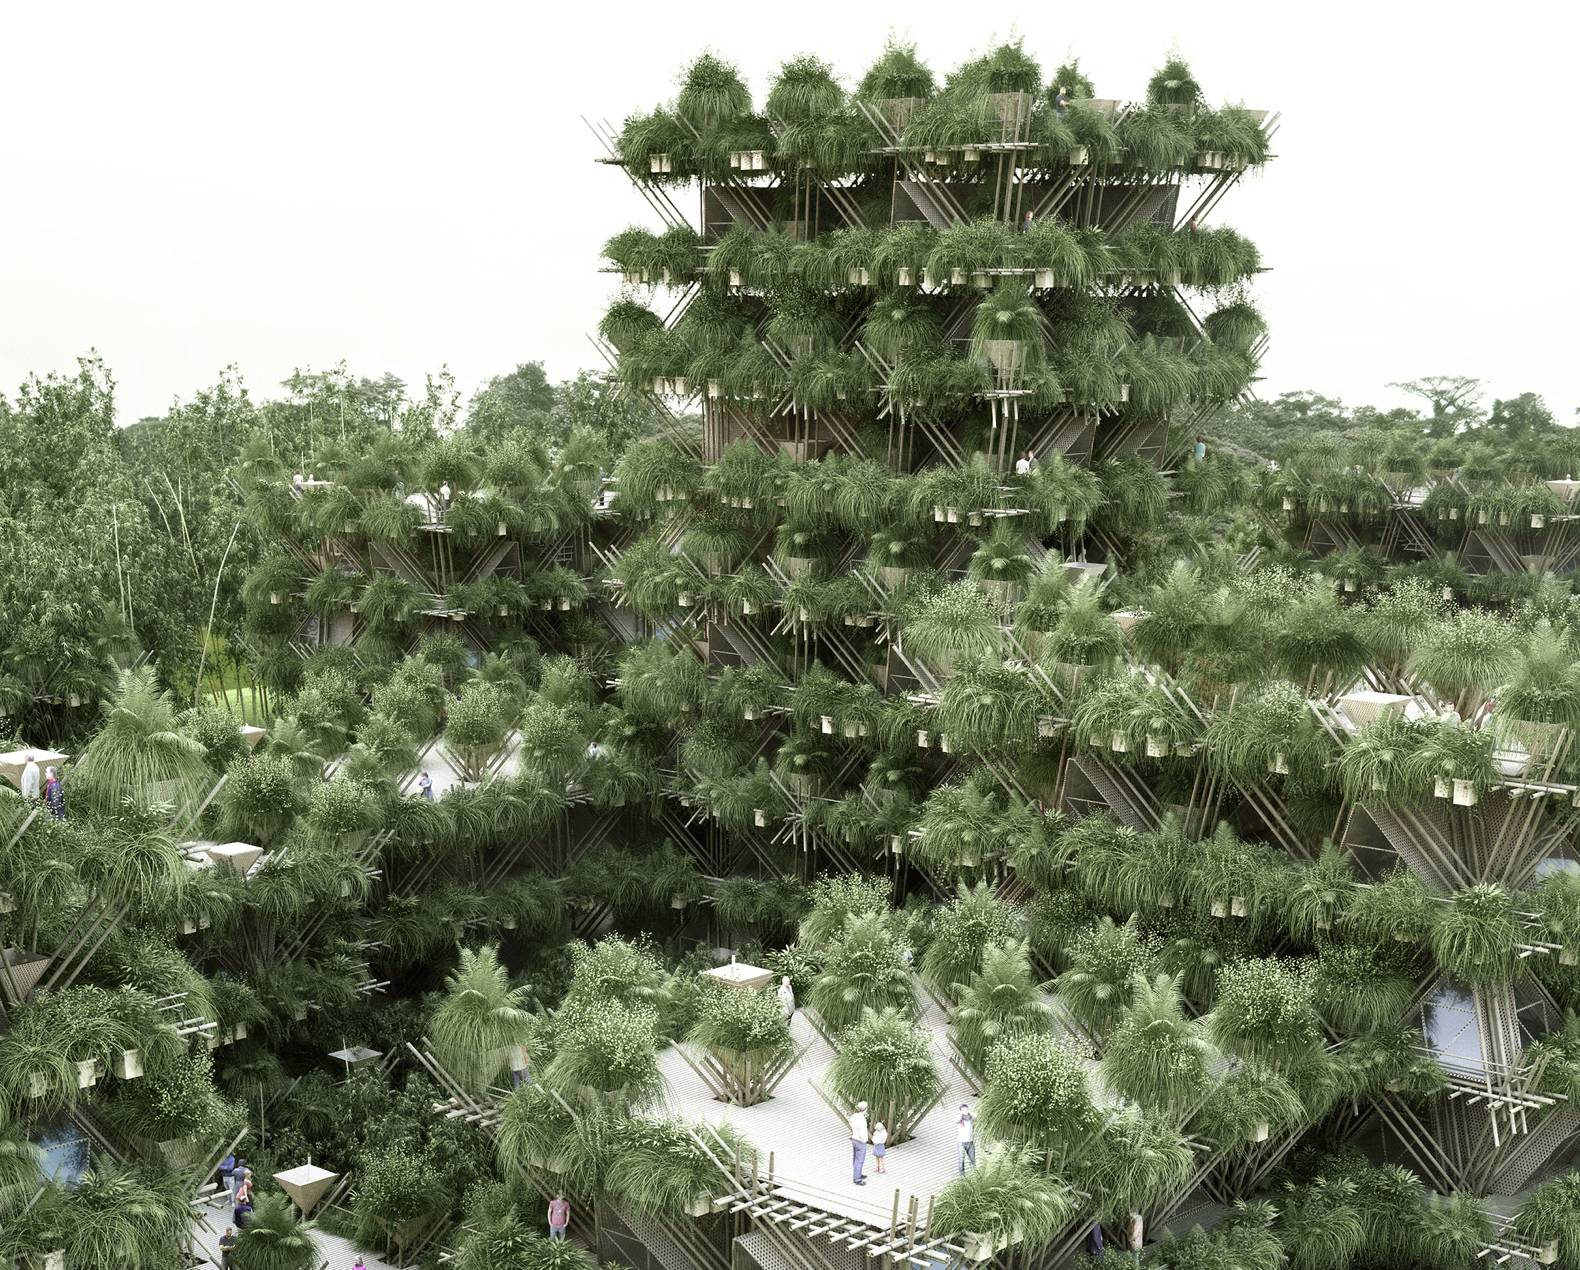 Penda Unveils Its Vision For A 20000 Person City Constructed Entirely From Bamboo